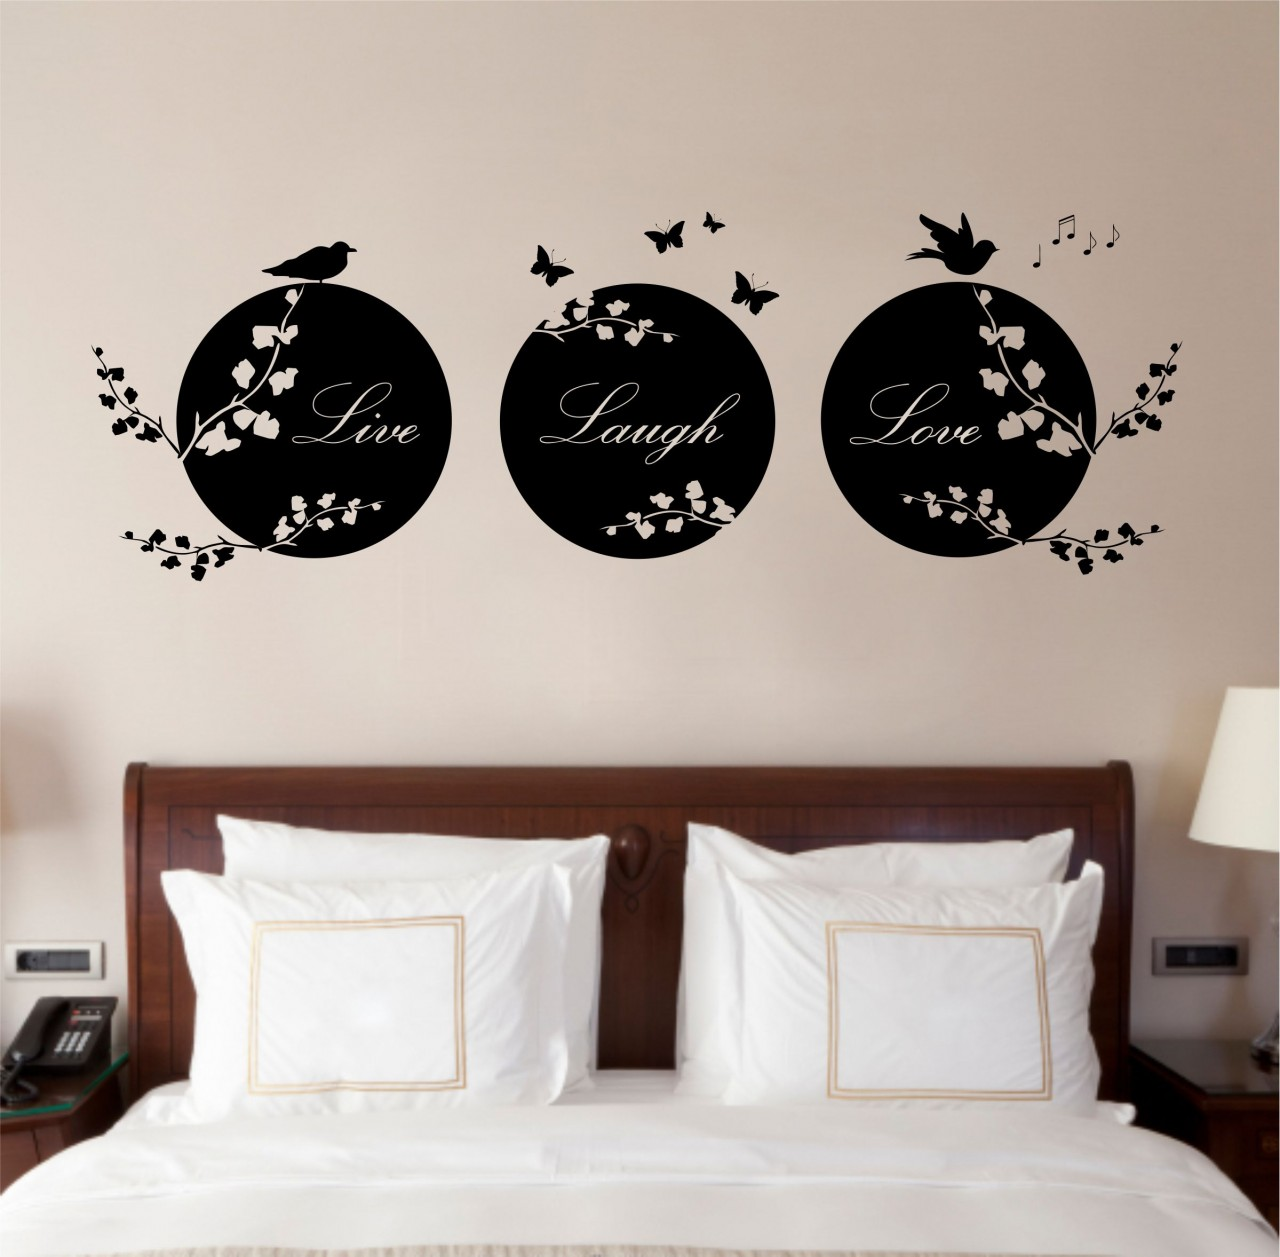 Sticker Decor 5 Types Of Wall Art Stickers To Beautify The Room